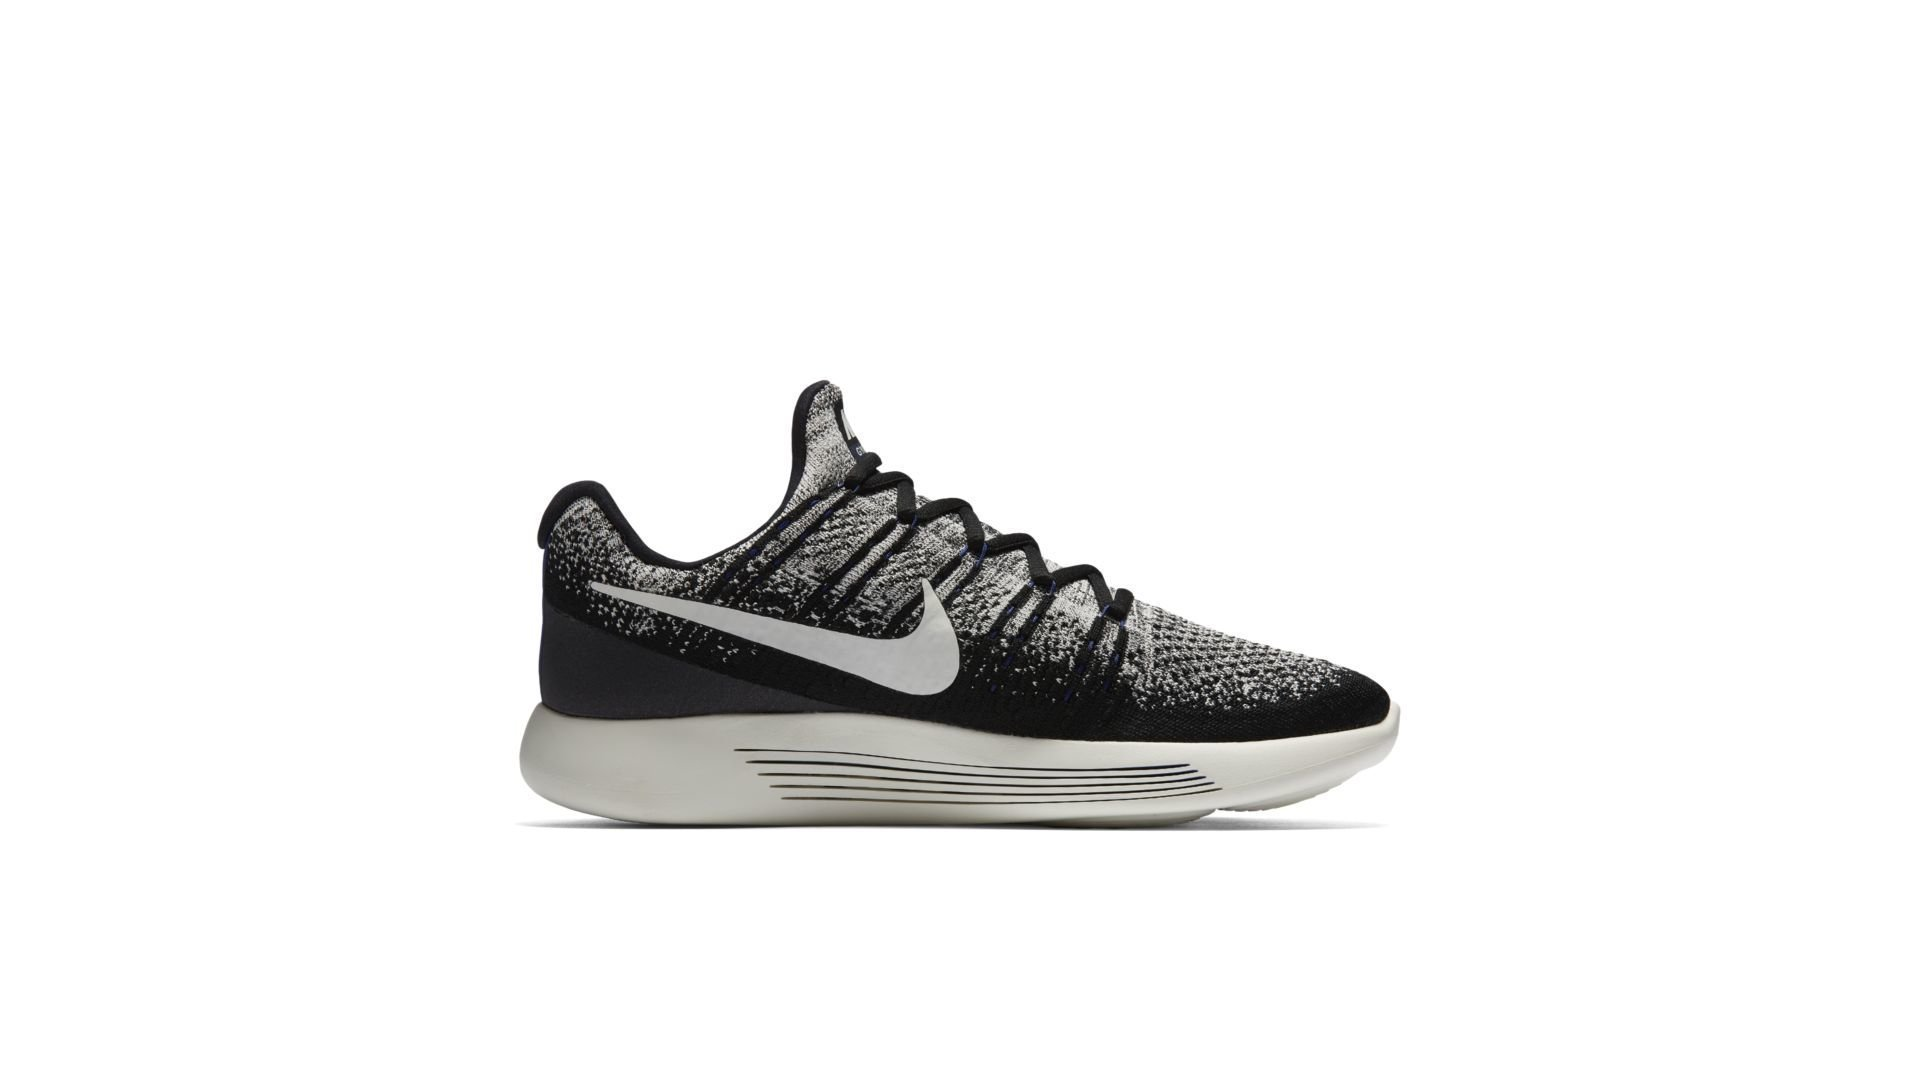 Nike LunarEpic Low Flyknit 2 Gyakusou Black (880283-001)